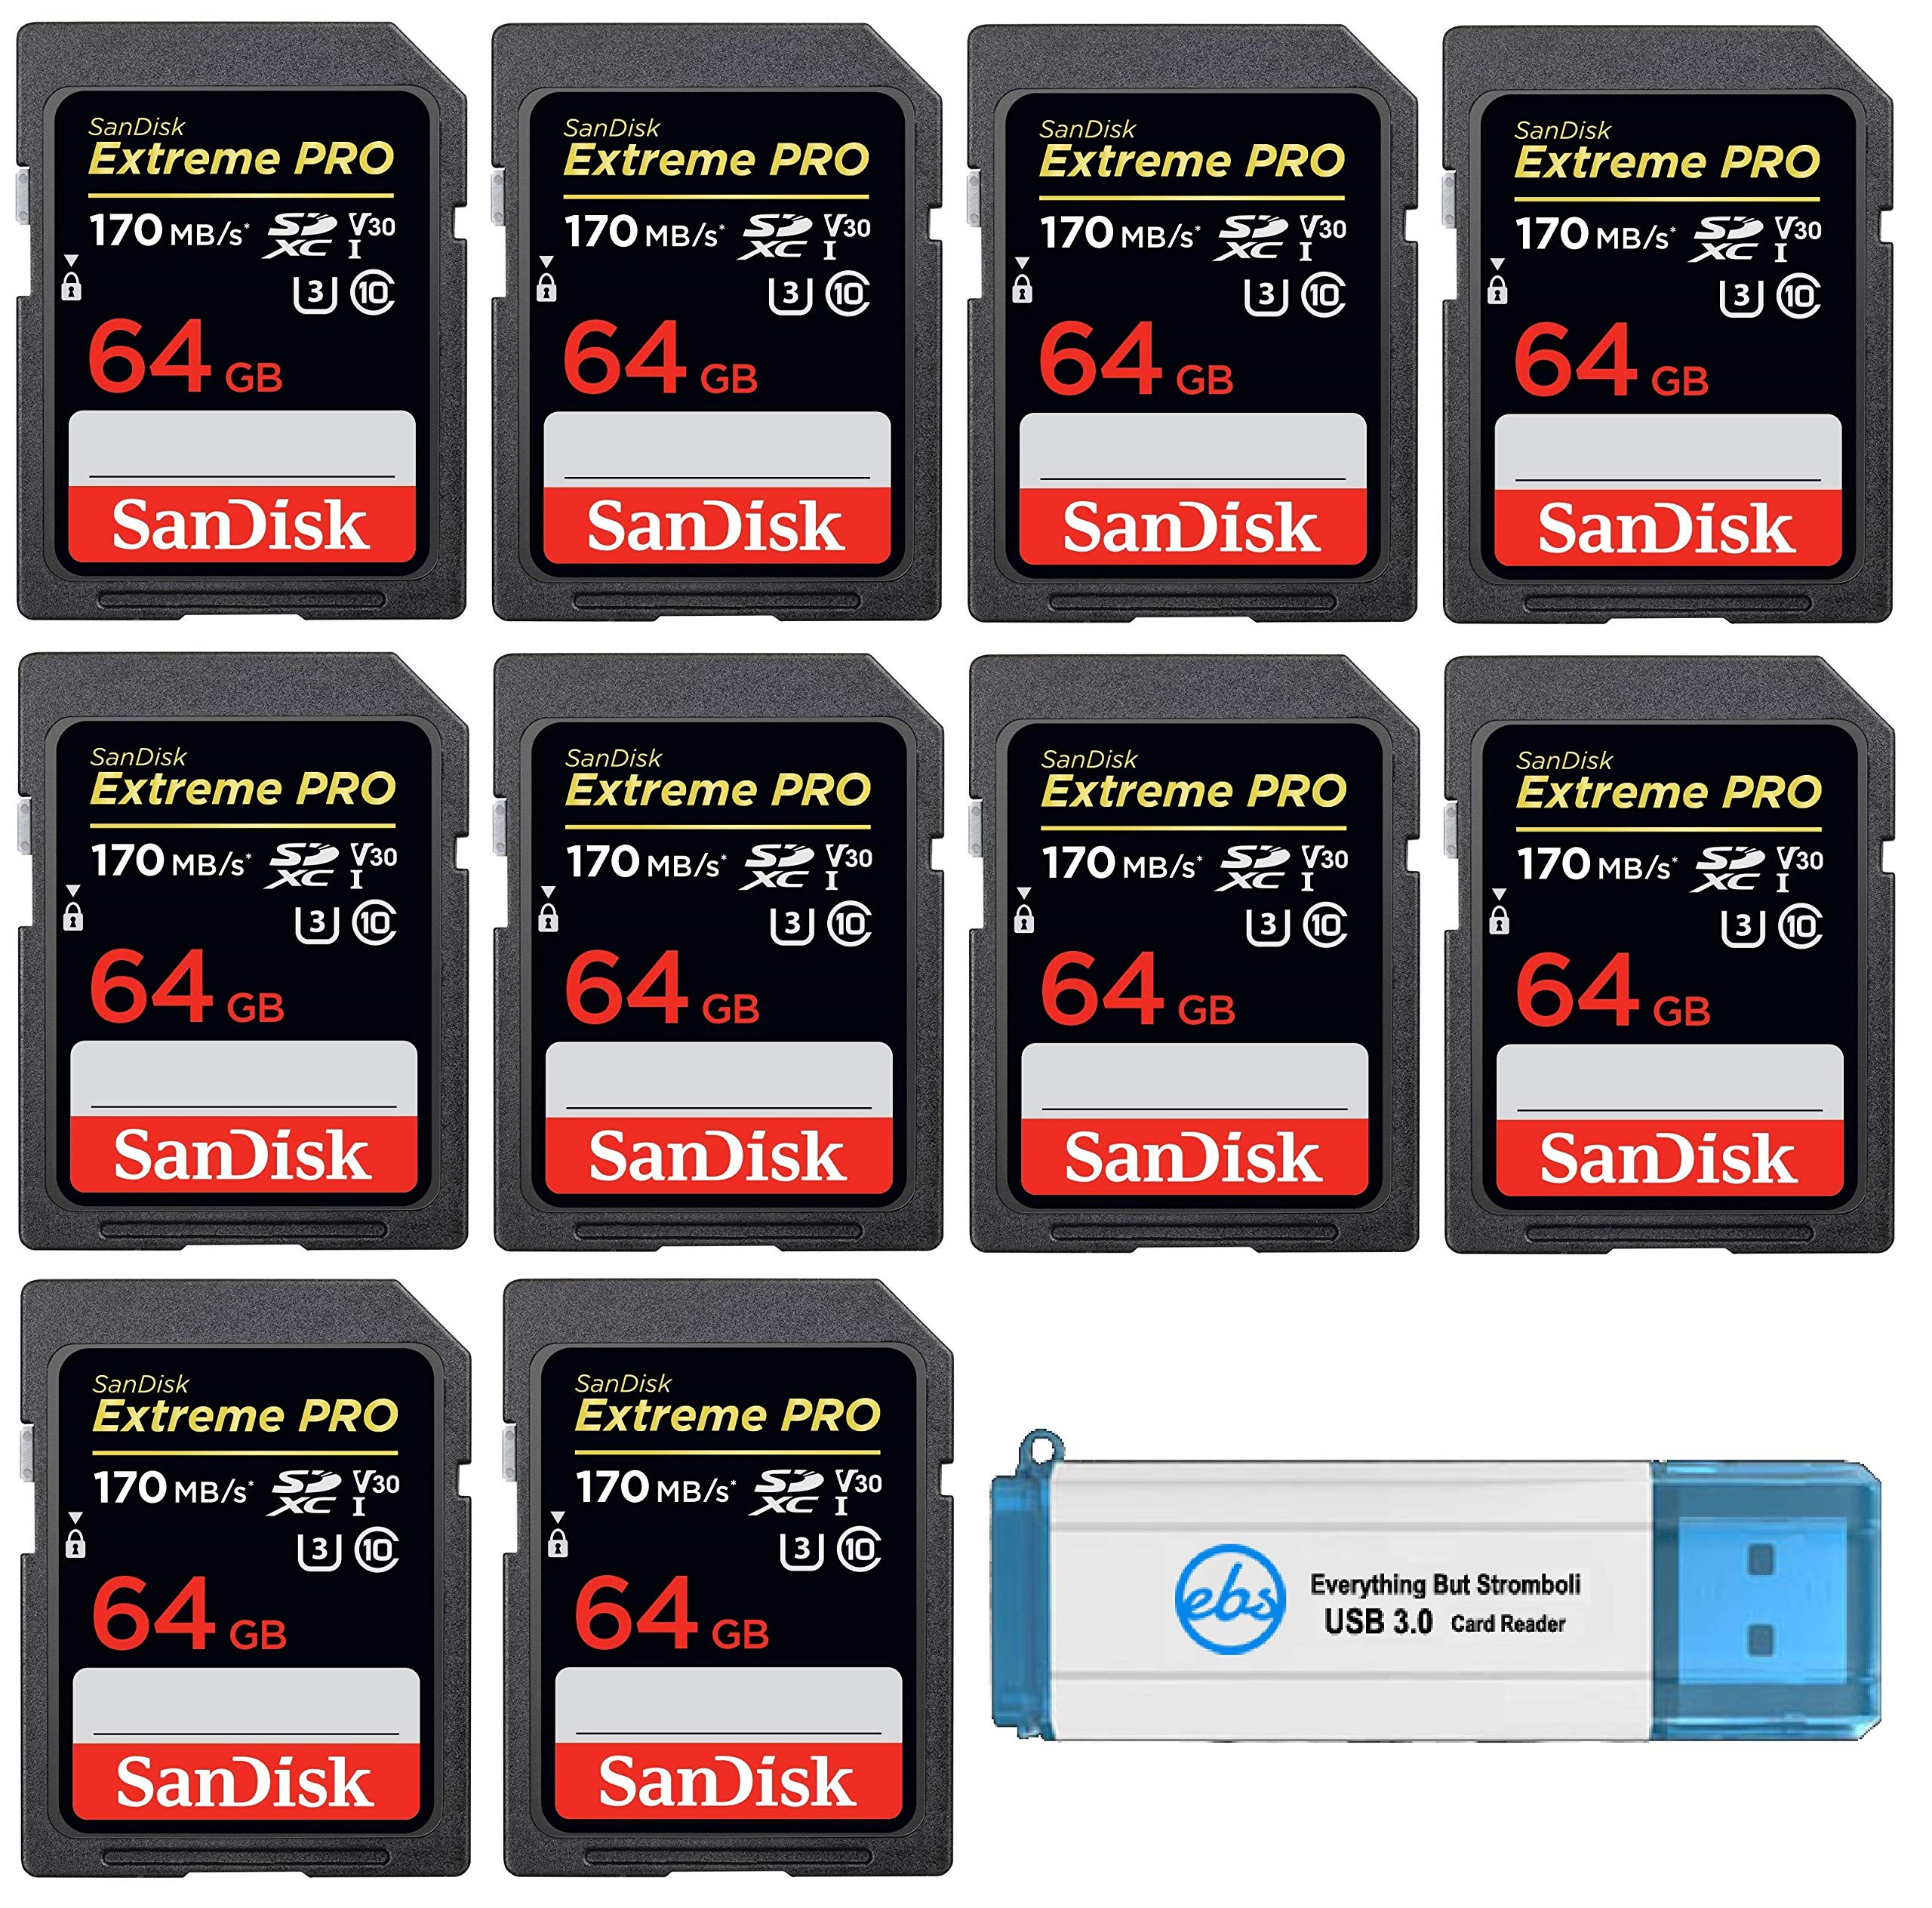 SanDisk 64GB SDXC Extreme Pro Memory Card (10 Pack Bundle) 4K V30 UHS-I Speed Class 10 (SDSDXXY-064G-GN4IN) with (1) Everything But Stromboli (TM) 3.0 SD/TF Card Reader by SanDisk